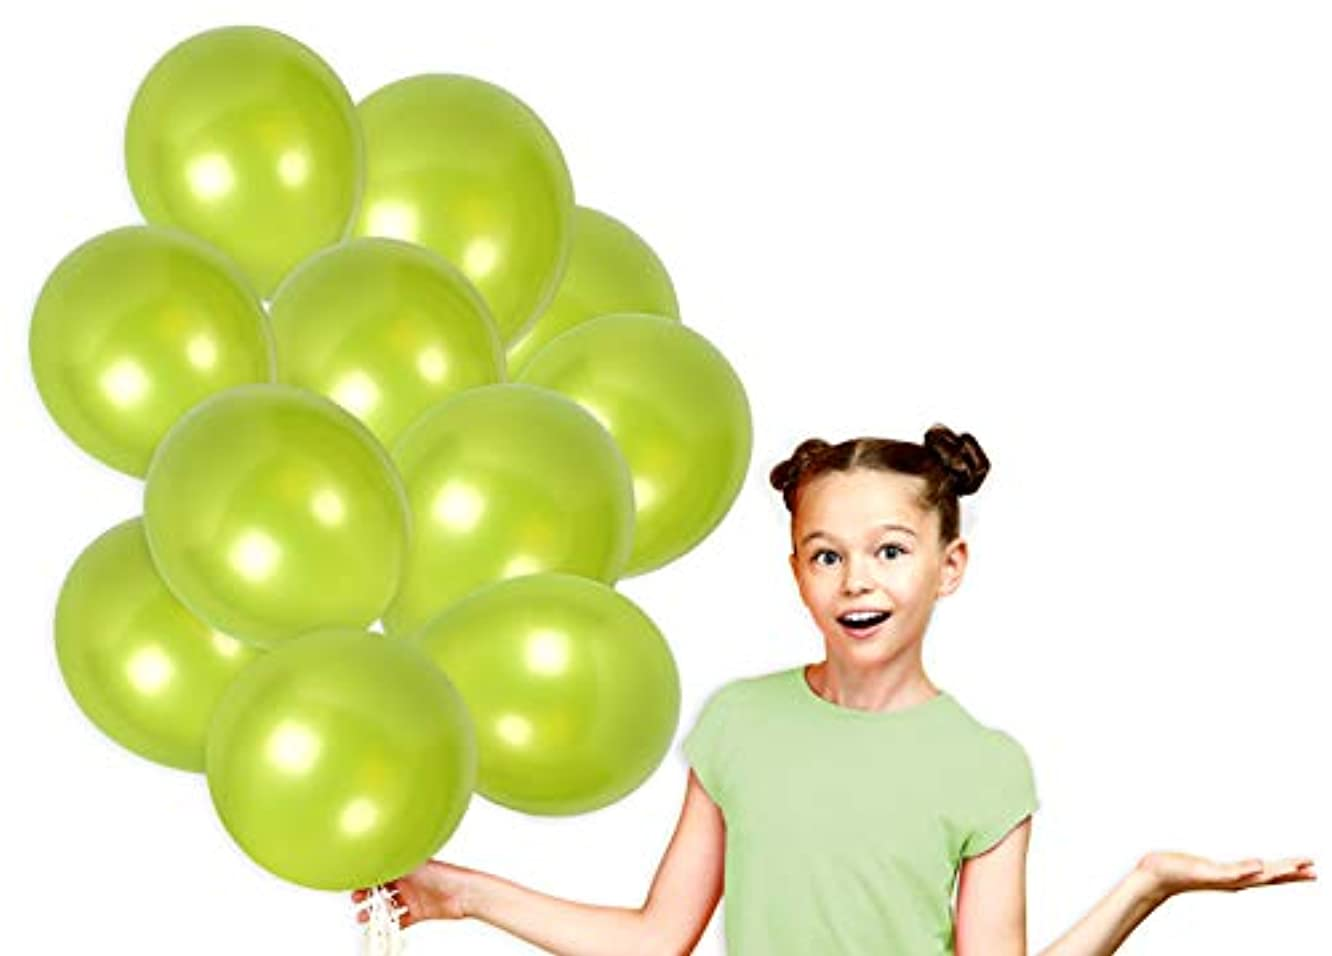 Pack of 36 Metallic Lime Green Balloons with Curling Ribbons Bright Pearl Latex for Christmas Birthday Decorations